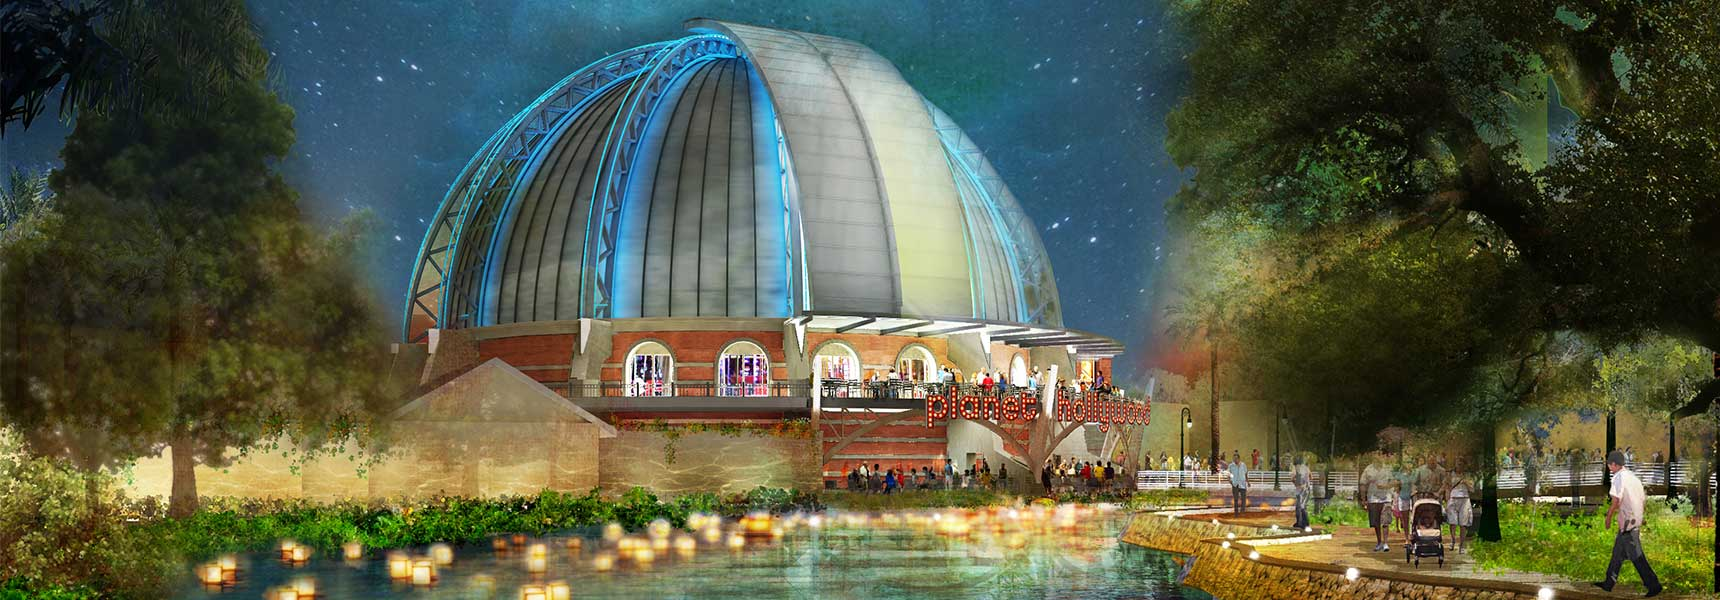 Concept art of the outdoor Stargazers patio